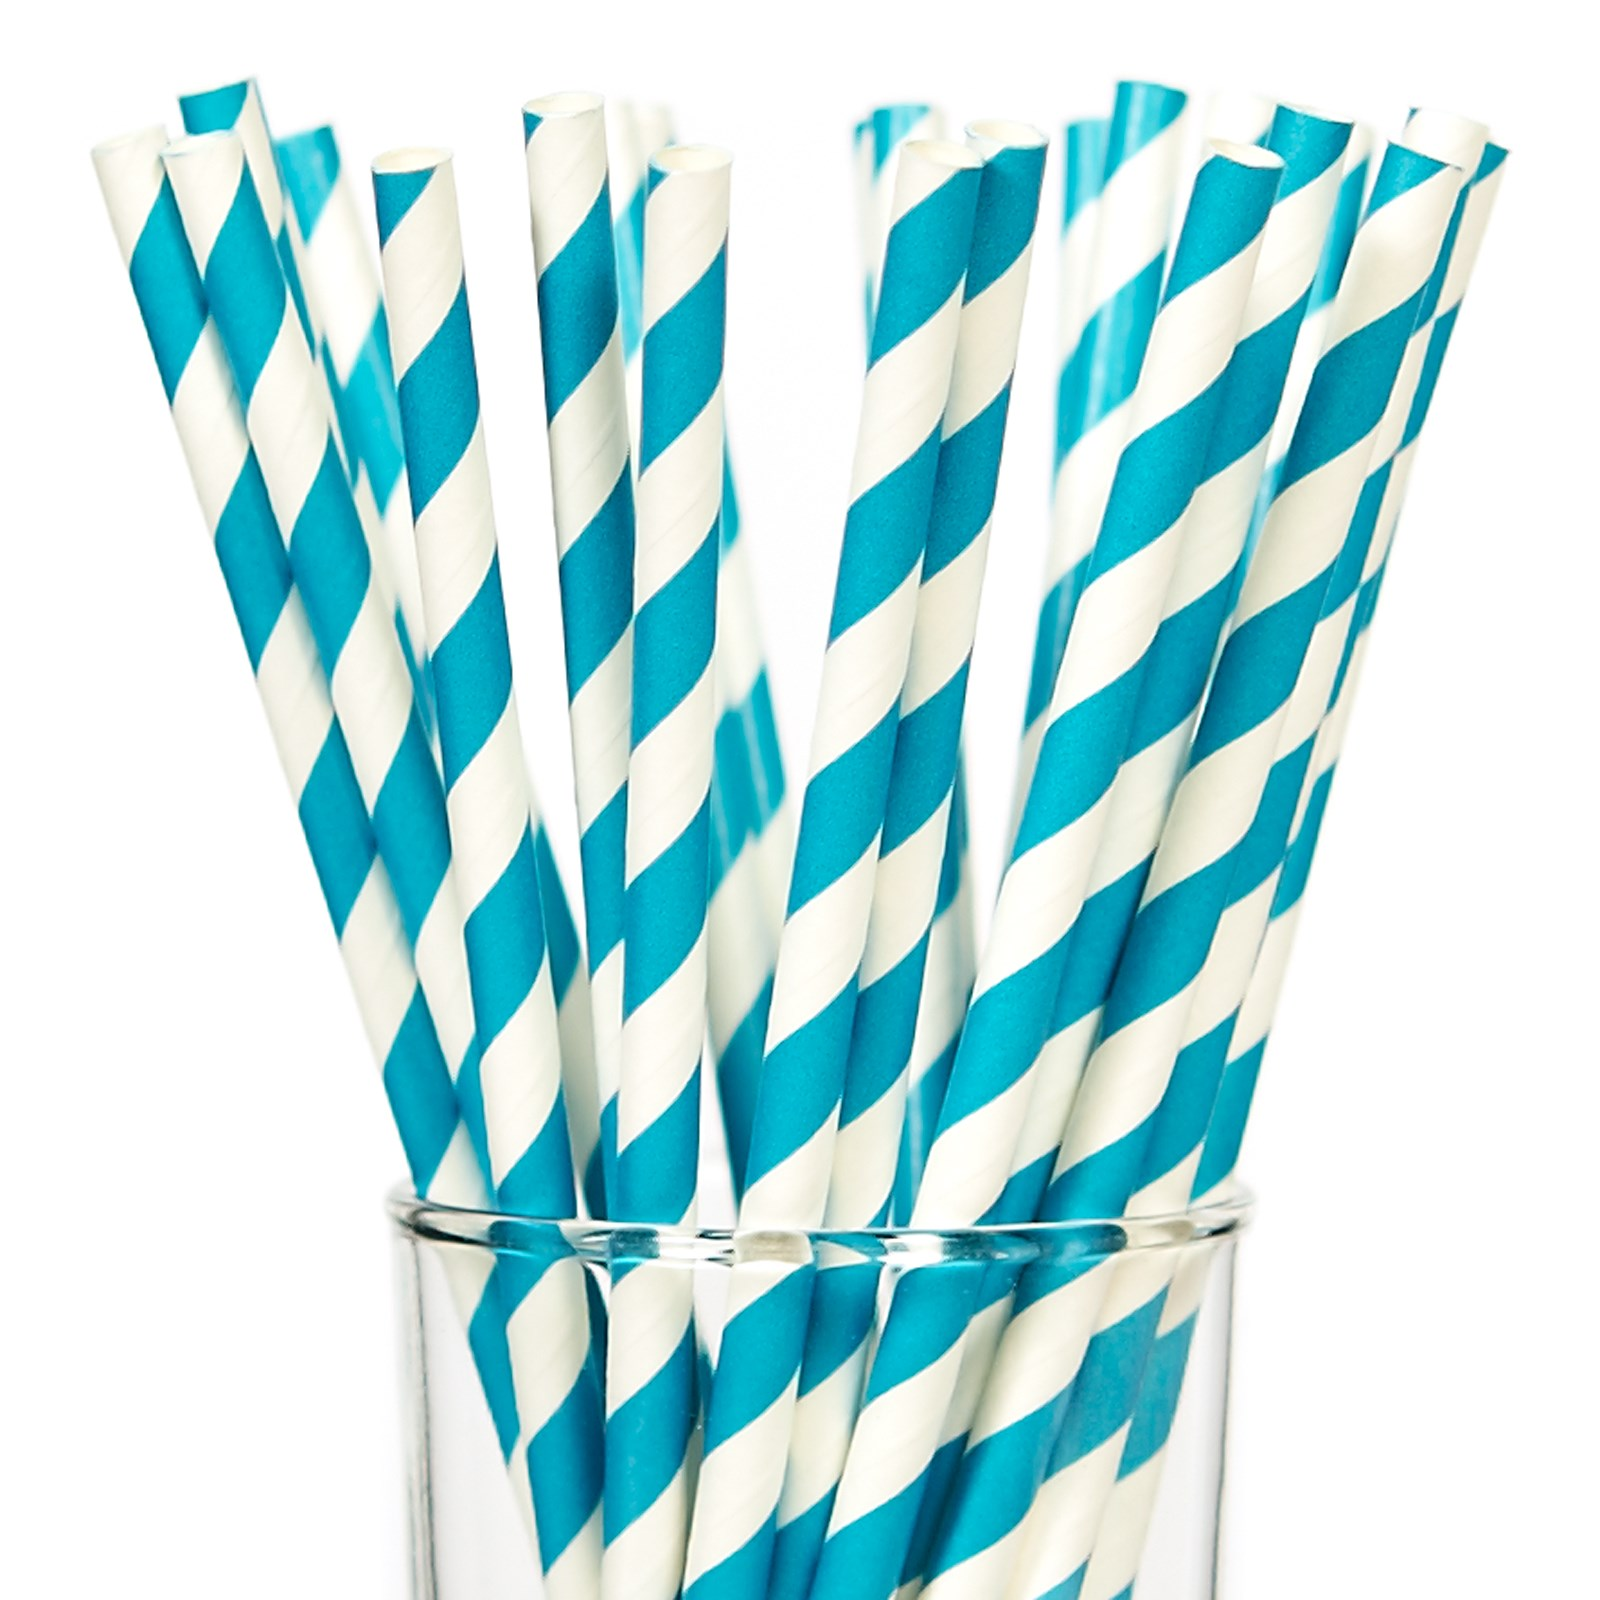 where to buy paper straws I bought mine at antique stores i collect ones from the 50's and 60's they are colored paper straws the boxes usually had something to do with a nursery rhyme or cowboys very colorful boxes seen one at an antique store years ago and it brought a lot of childhood memories back.